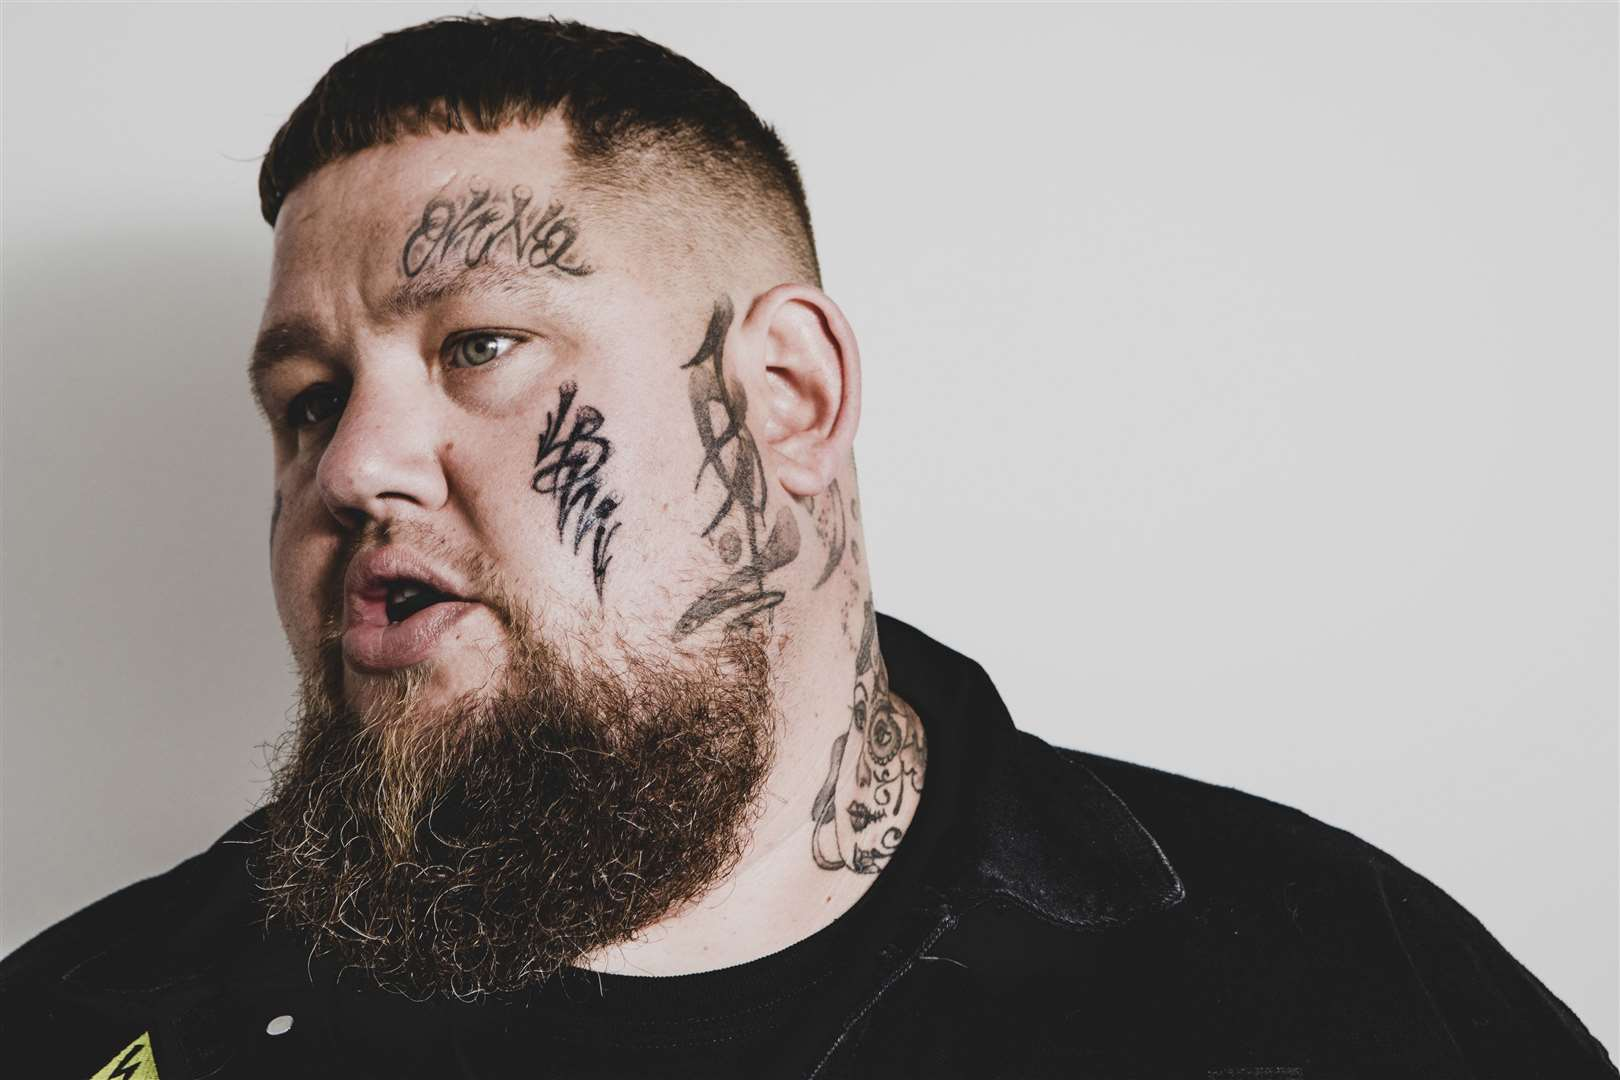 Rory Graham, aka Rag'n'Bone Man, is an English singer-songwriter known for his distinctive baritone voice (42542552)